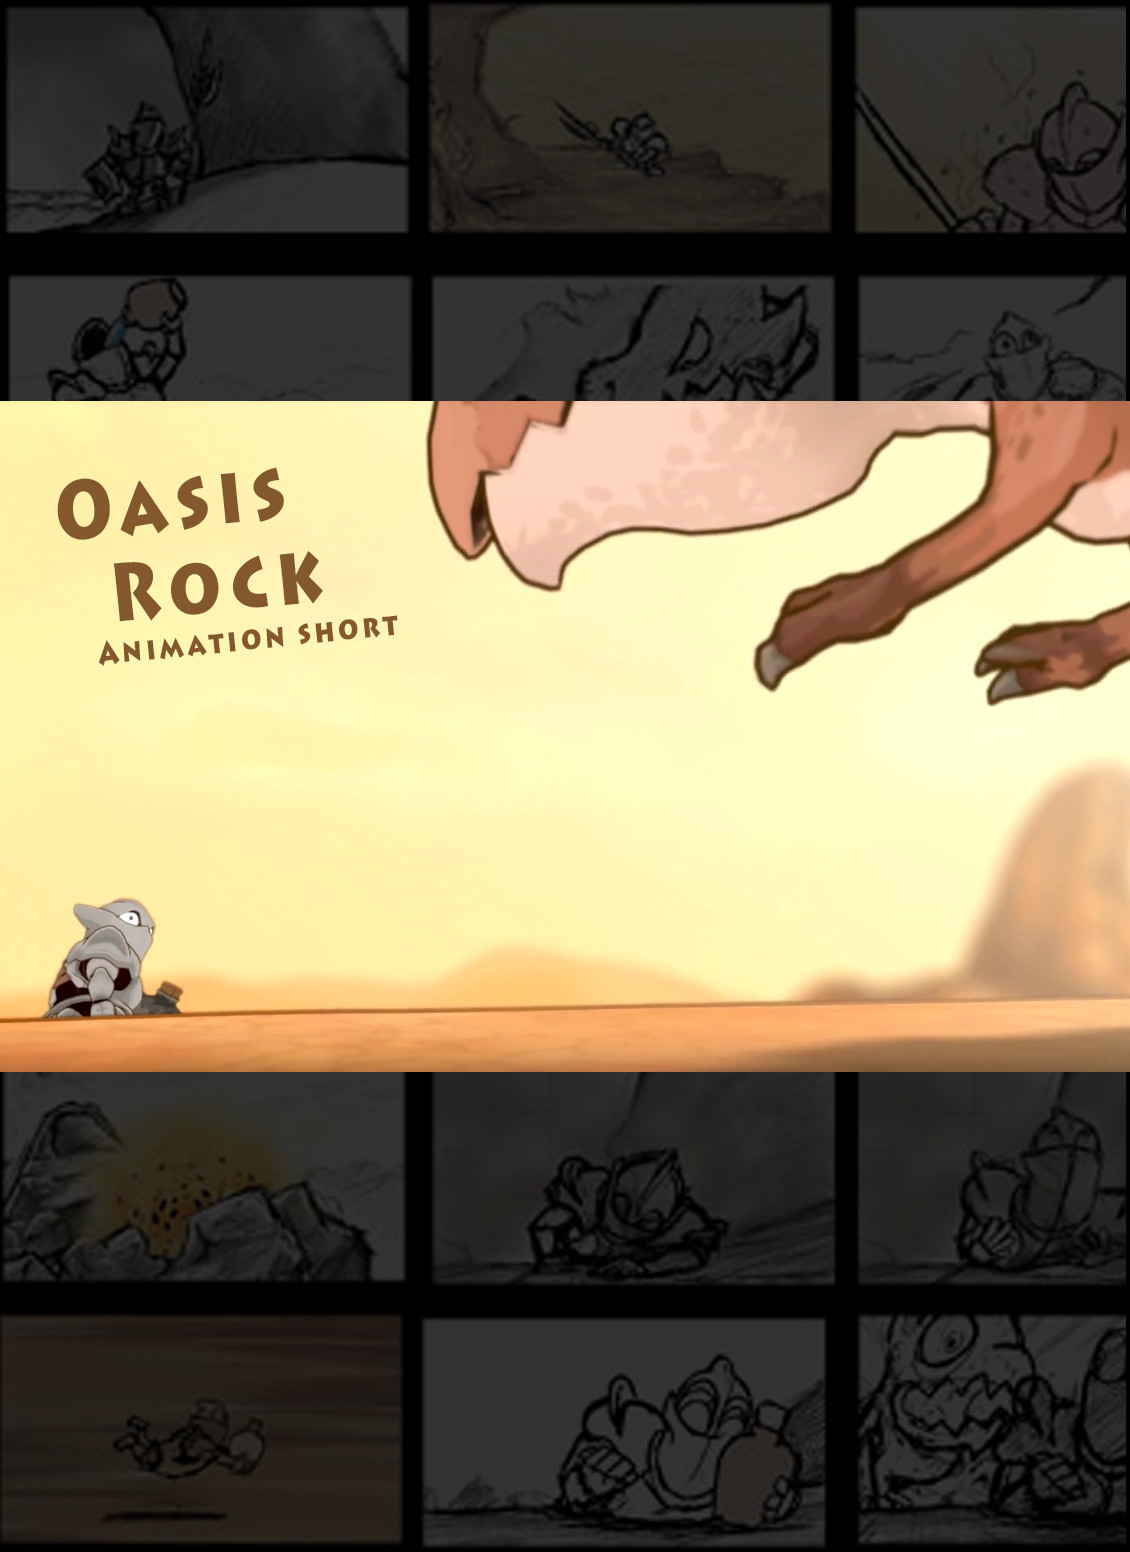 Oasis Rock - Animated Short